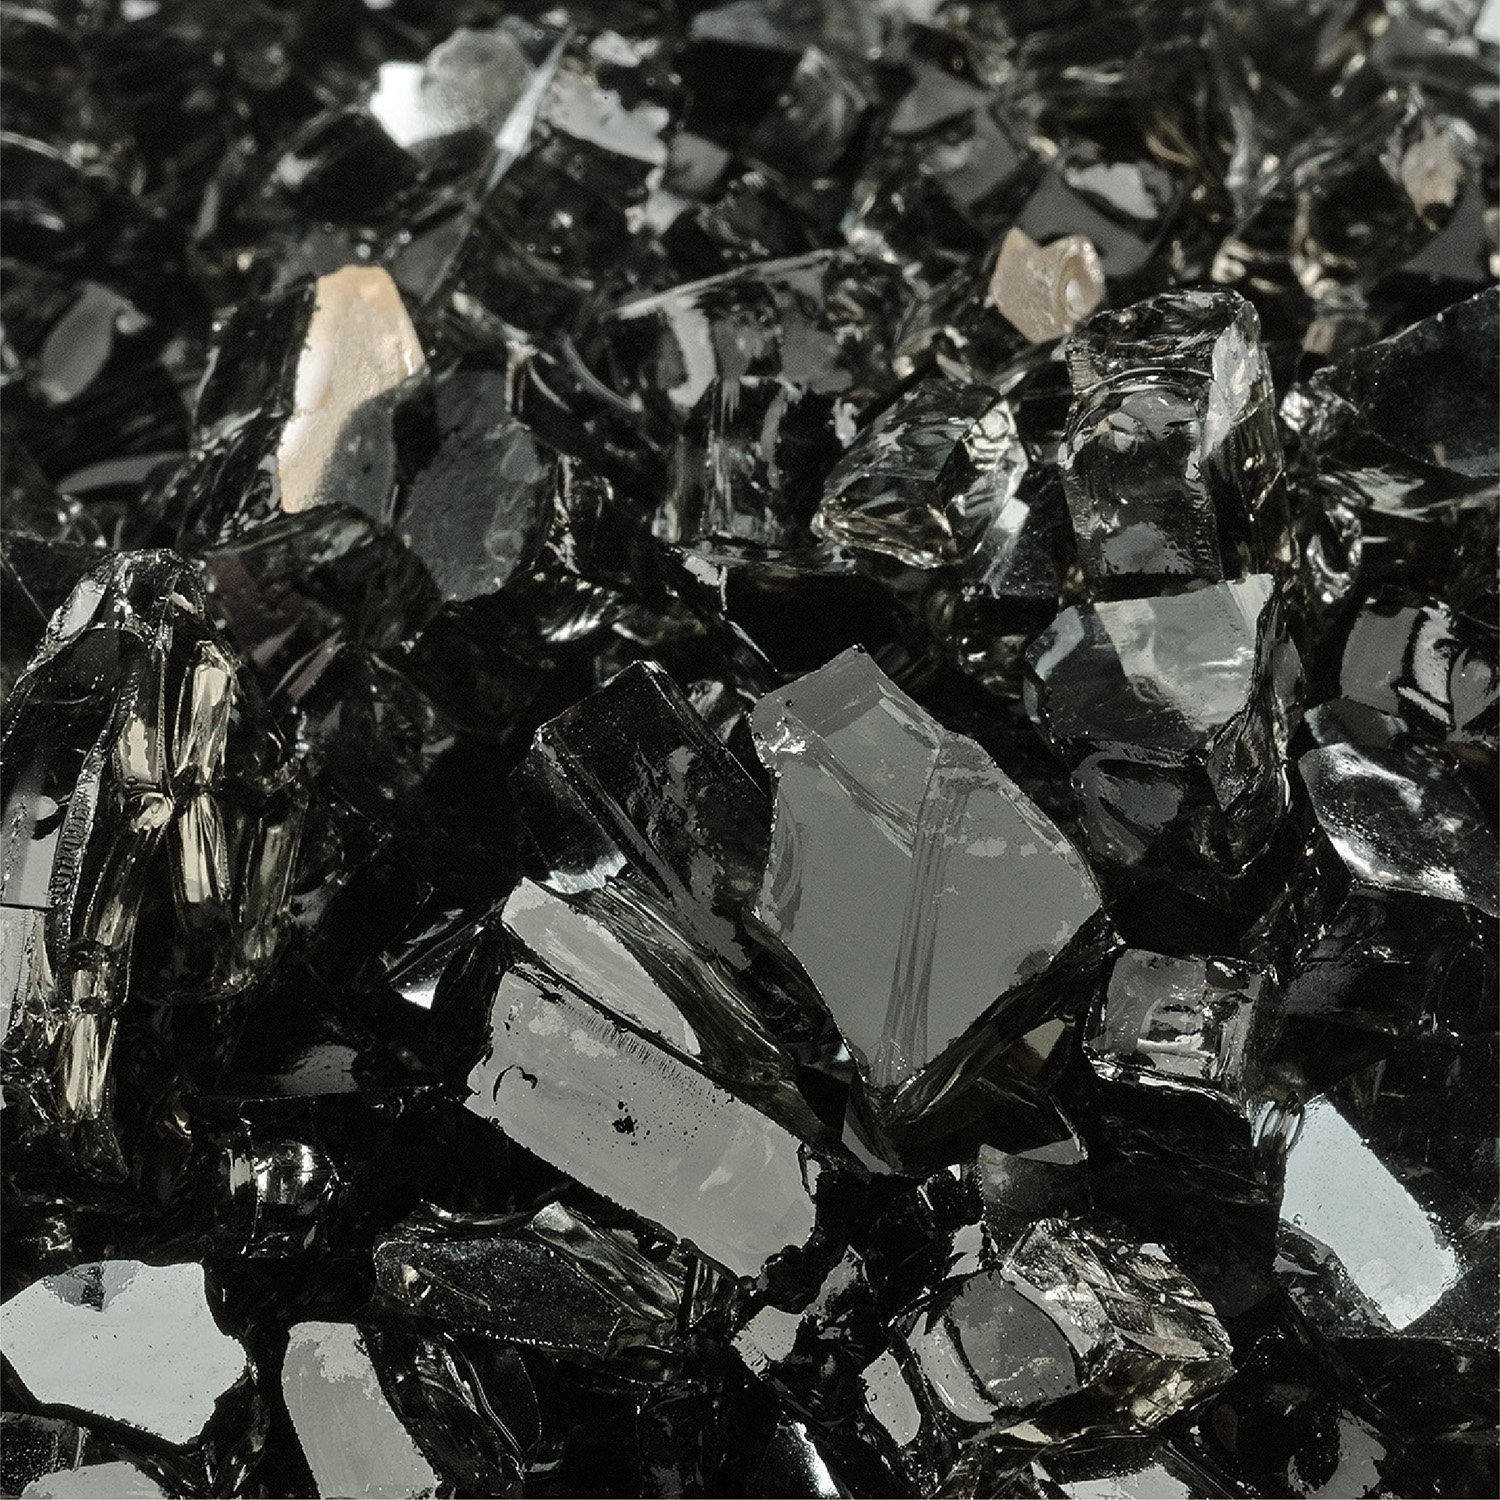 Midnight Black - Fire Glass for Indoor and Outdoor Fire Pits or Fireplaces   10 Pounds   1/4 Inch, Reflective